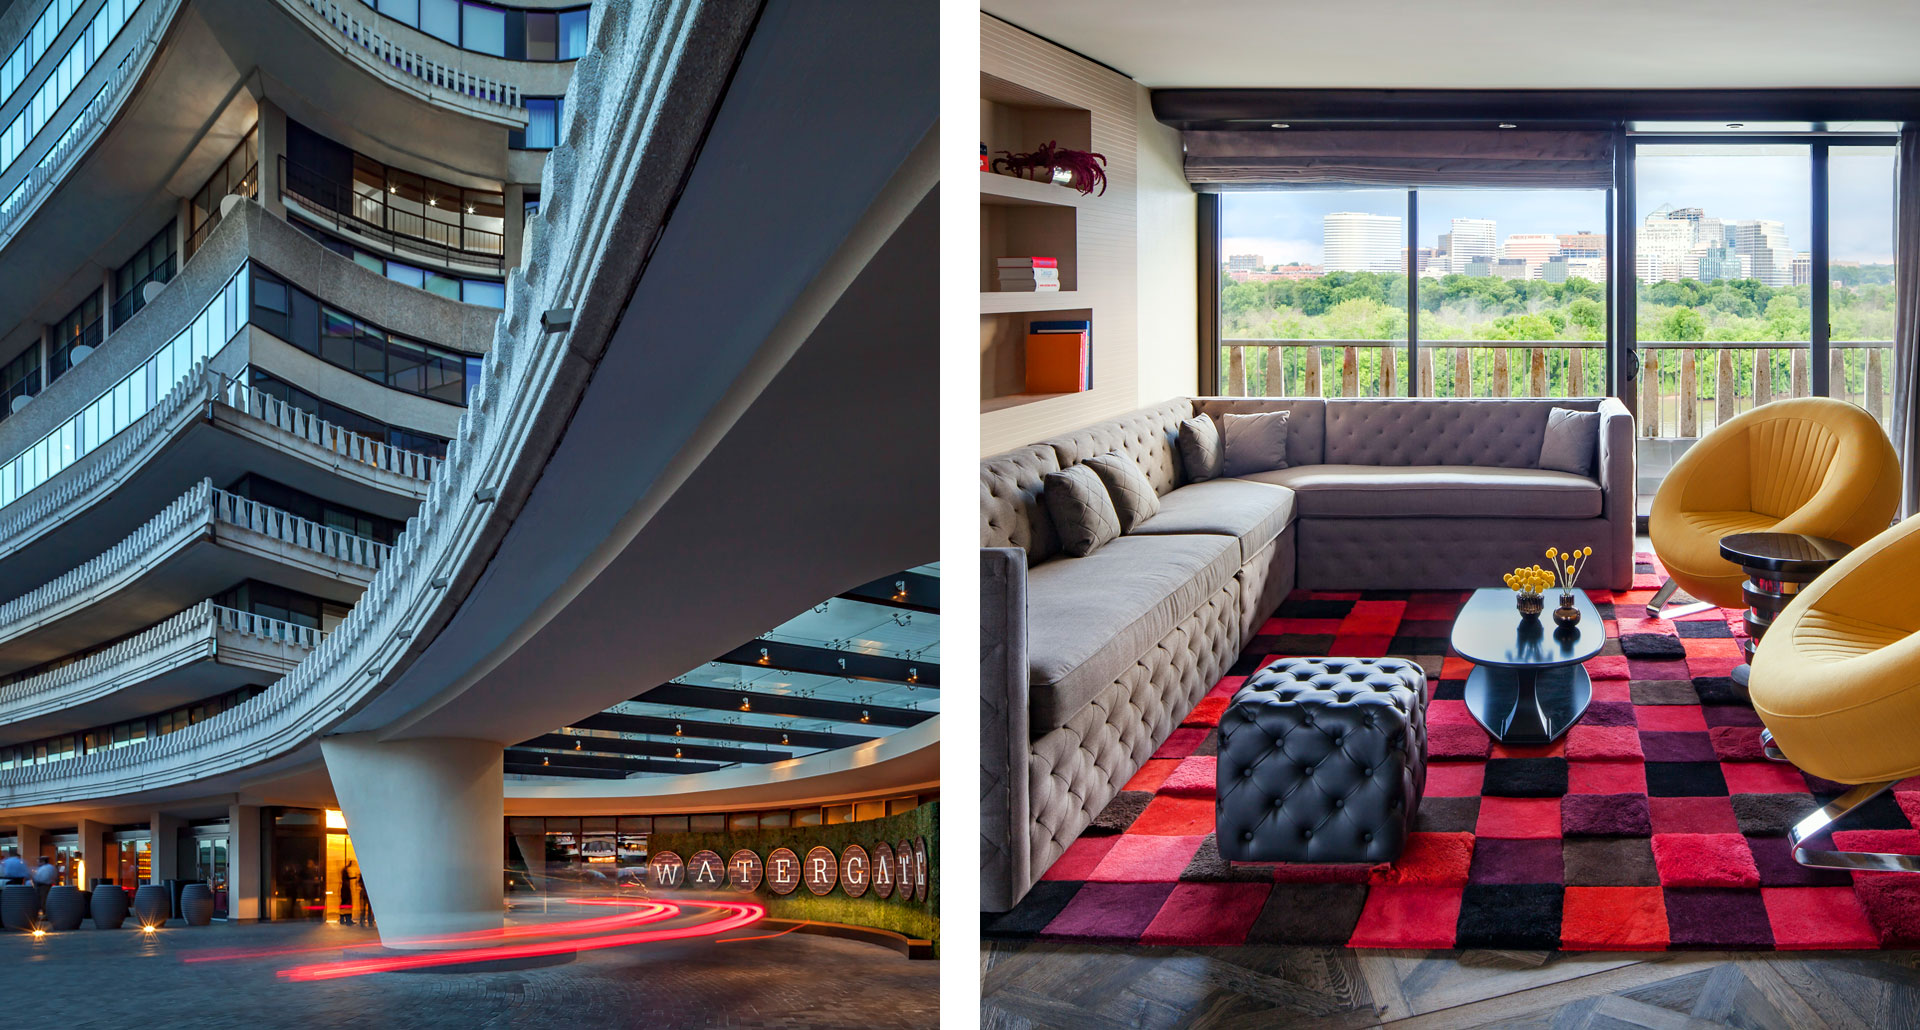 The Watergate Hotel - luxury boutique hotel in Washington DC